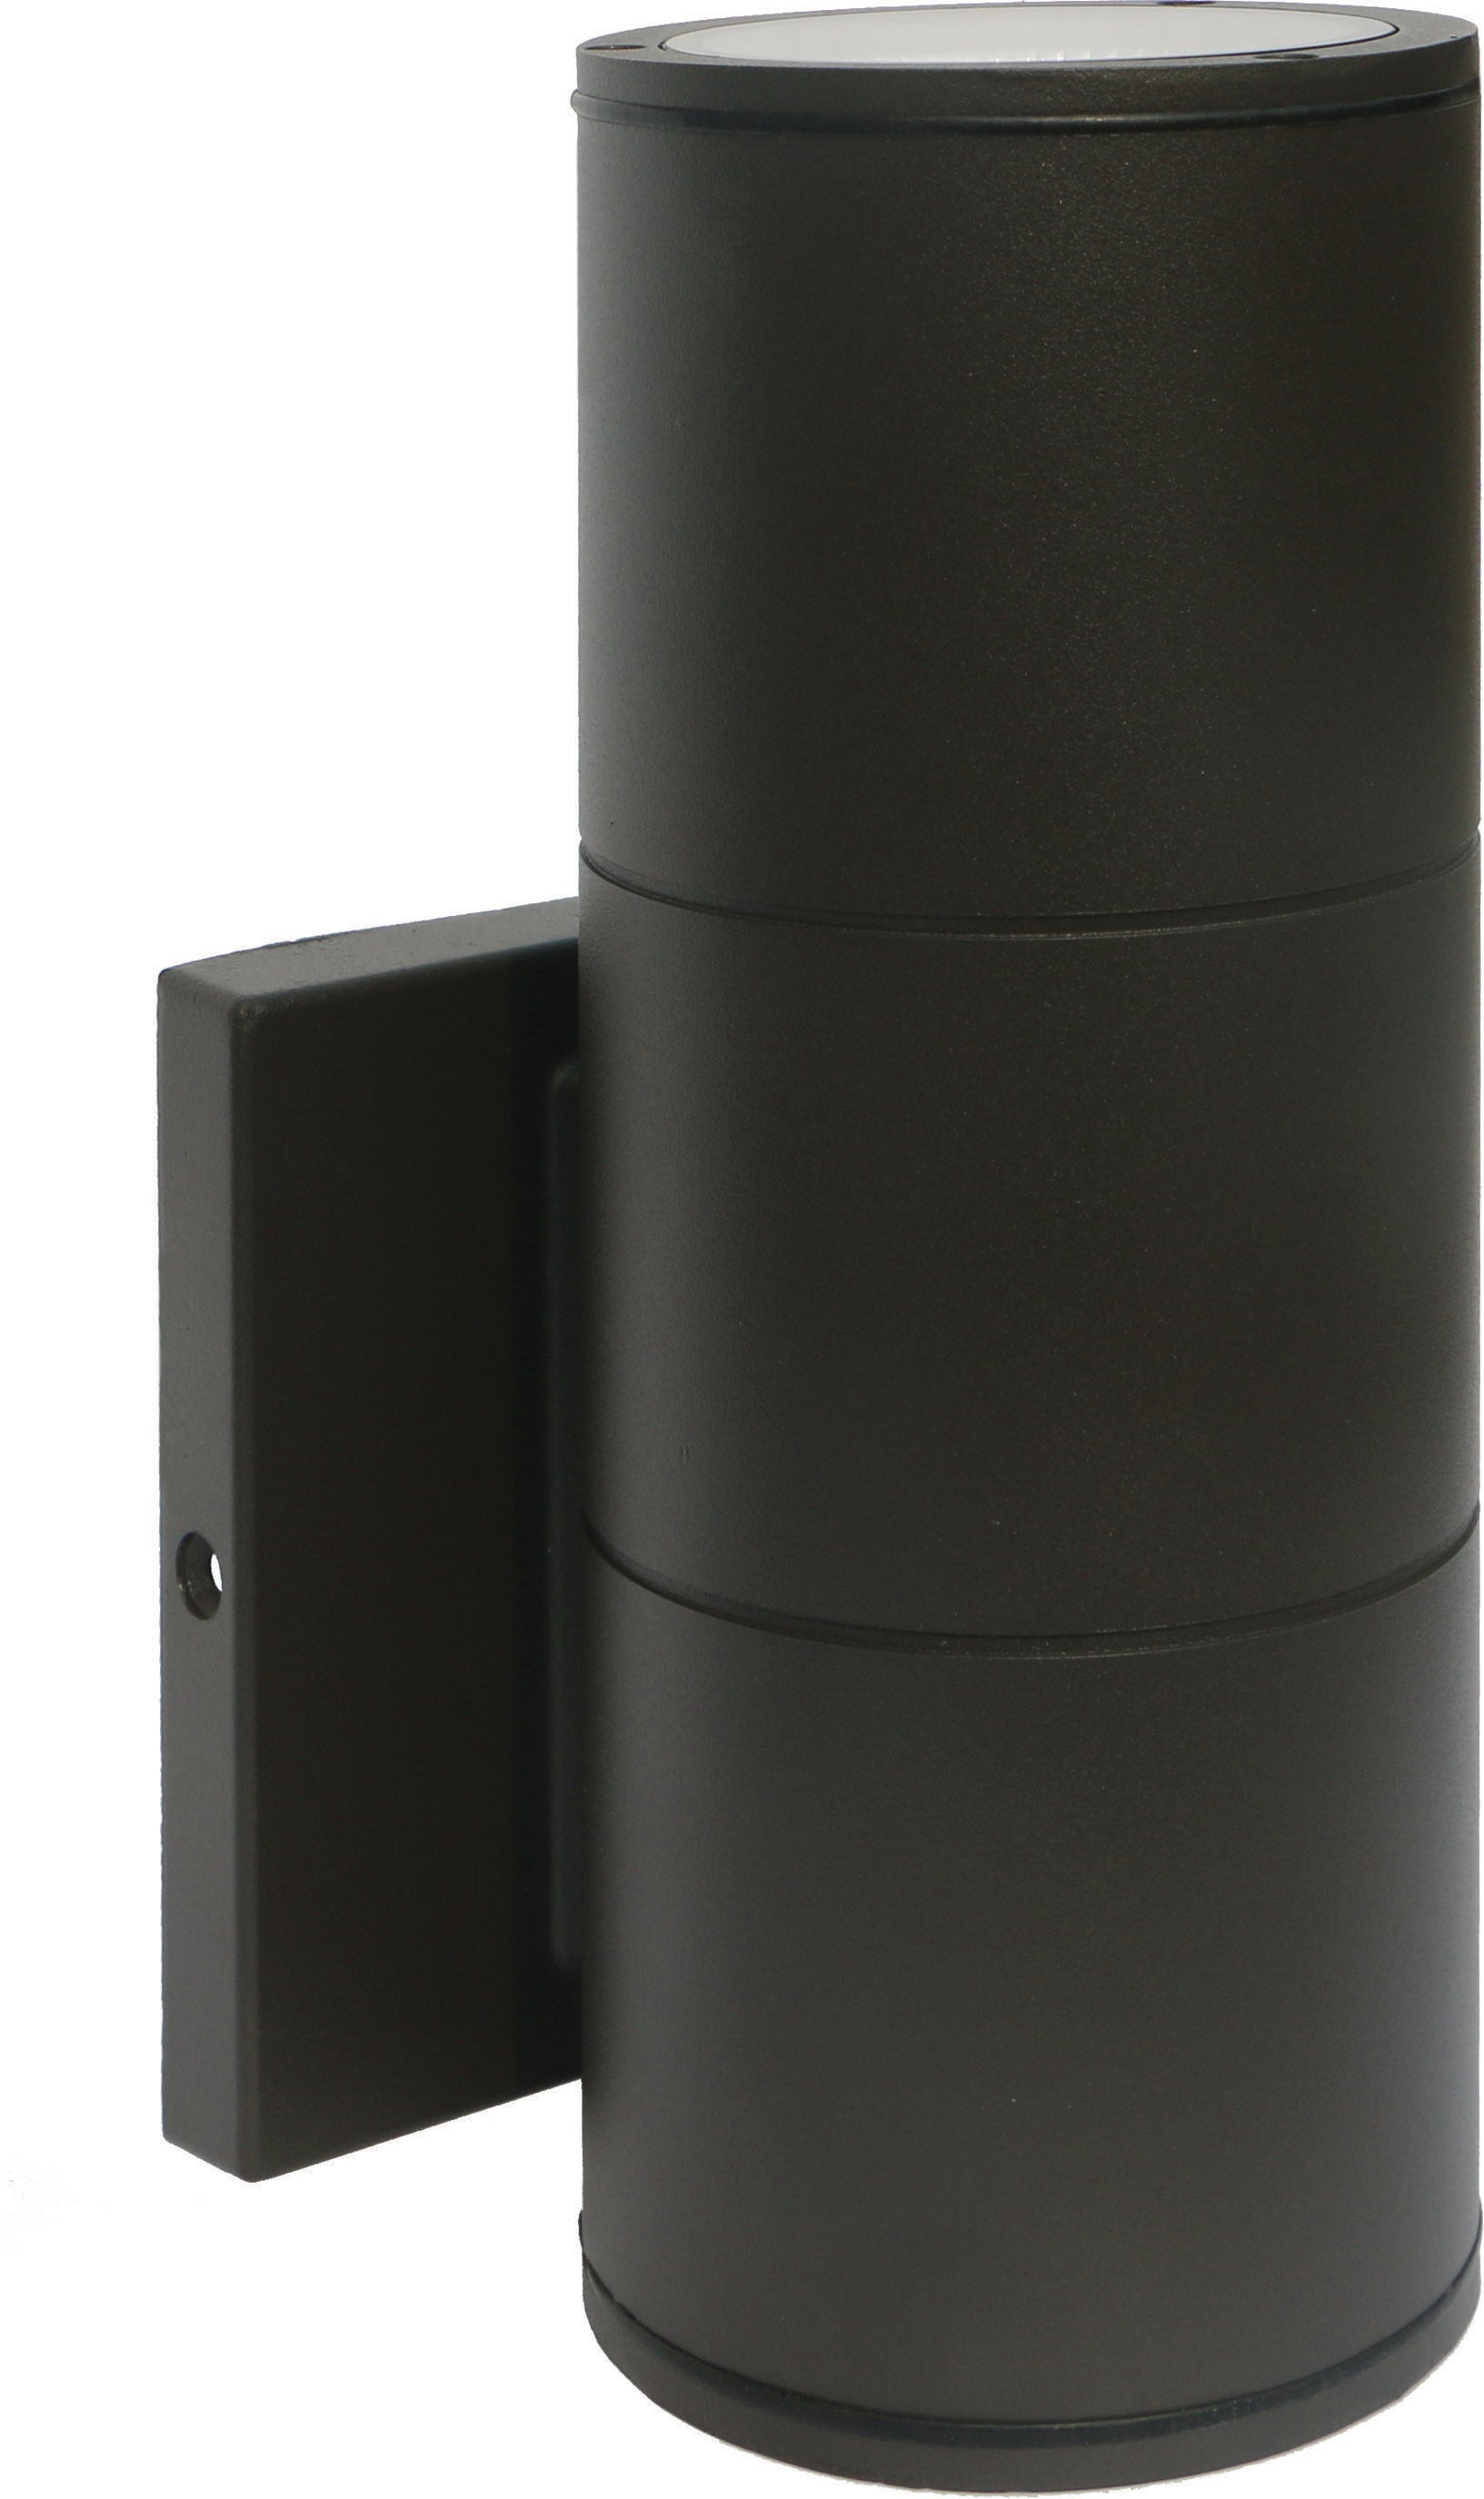 Nuvo 1-Light 10w Outdoor LED Wall Light Large Up or Down Sconce in Bronze Finish